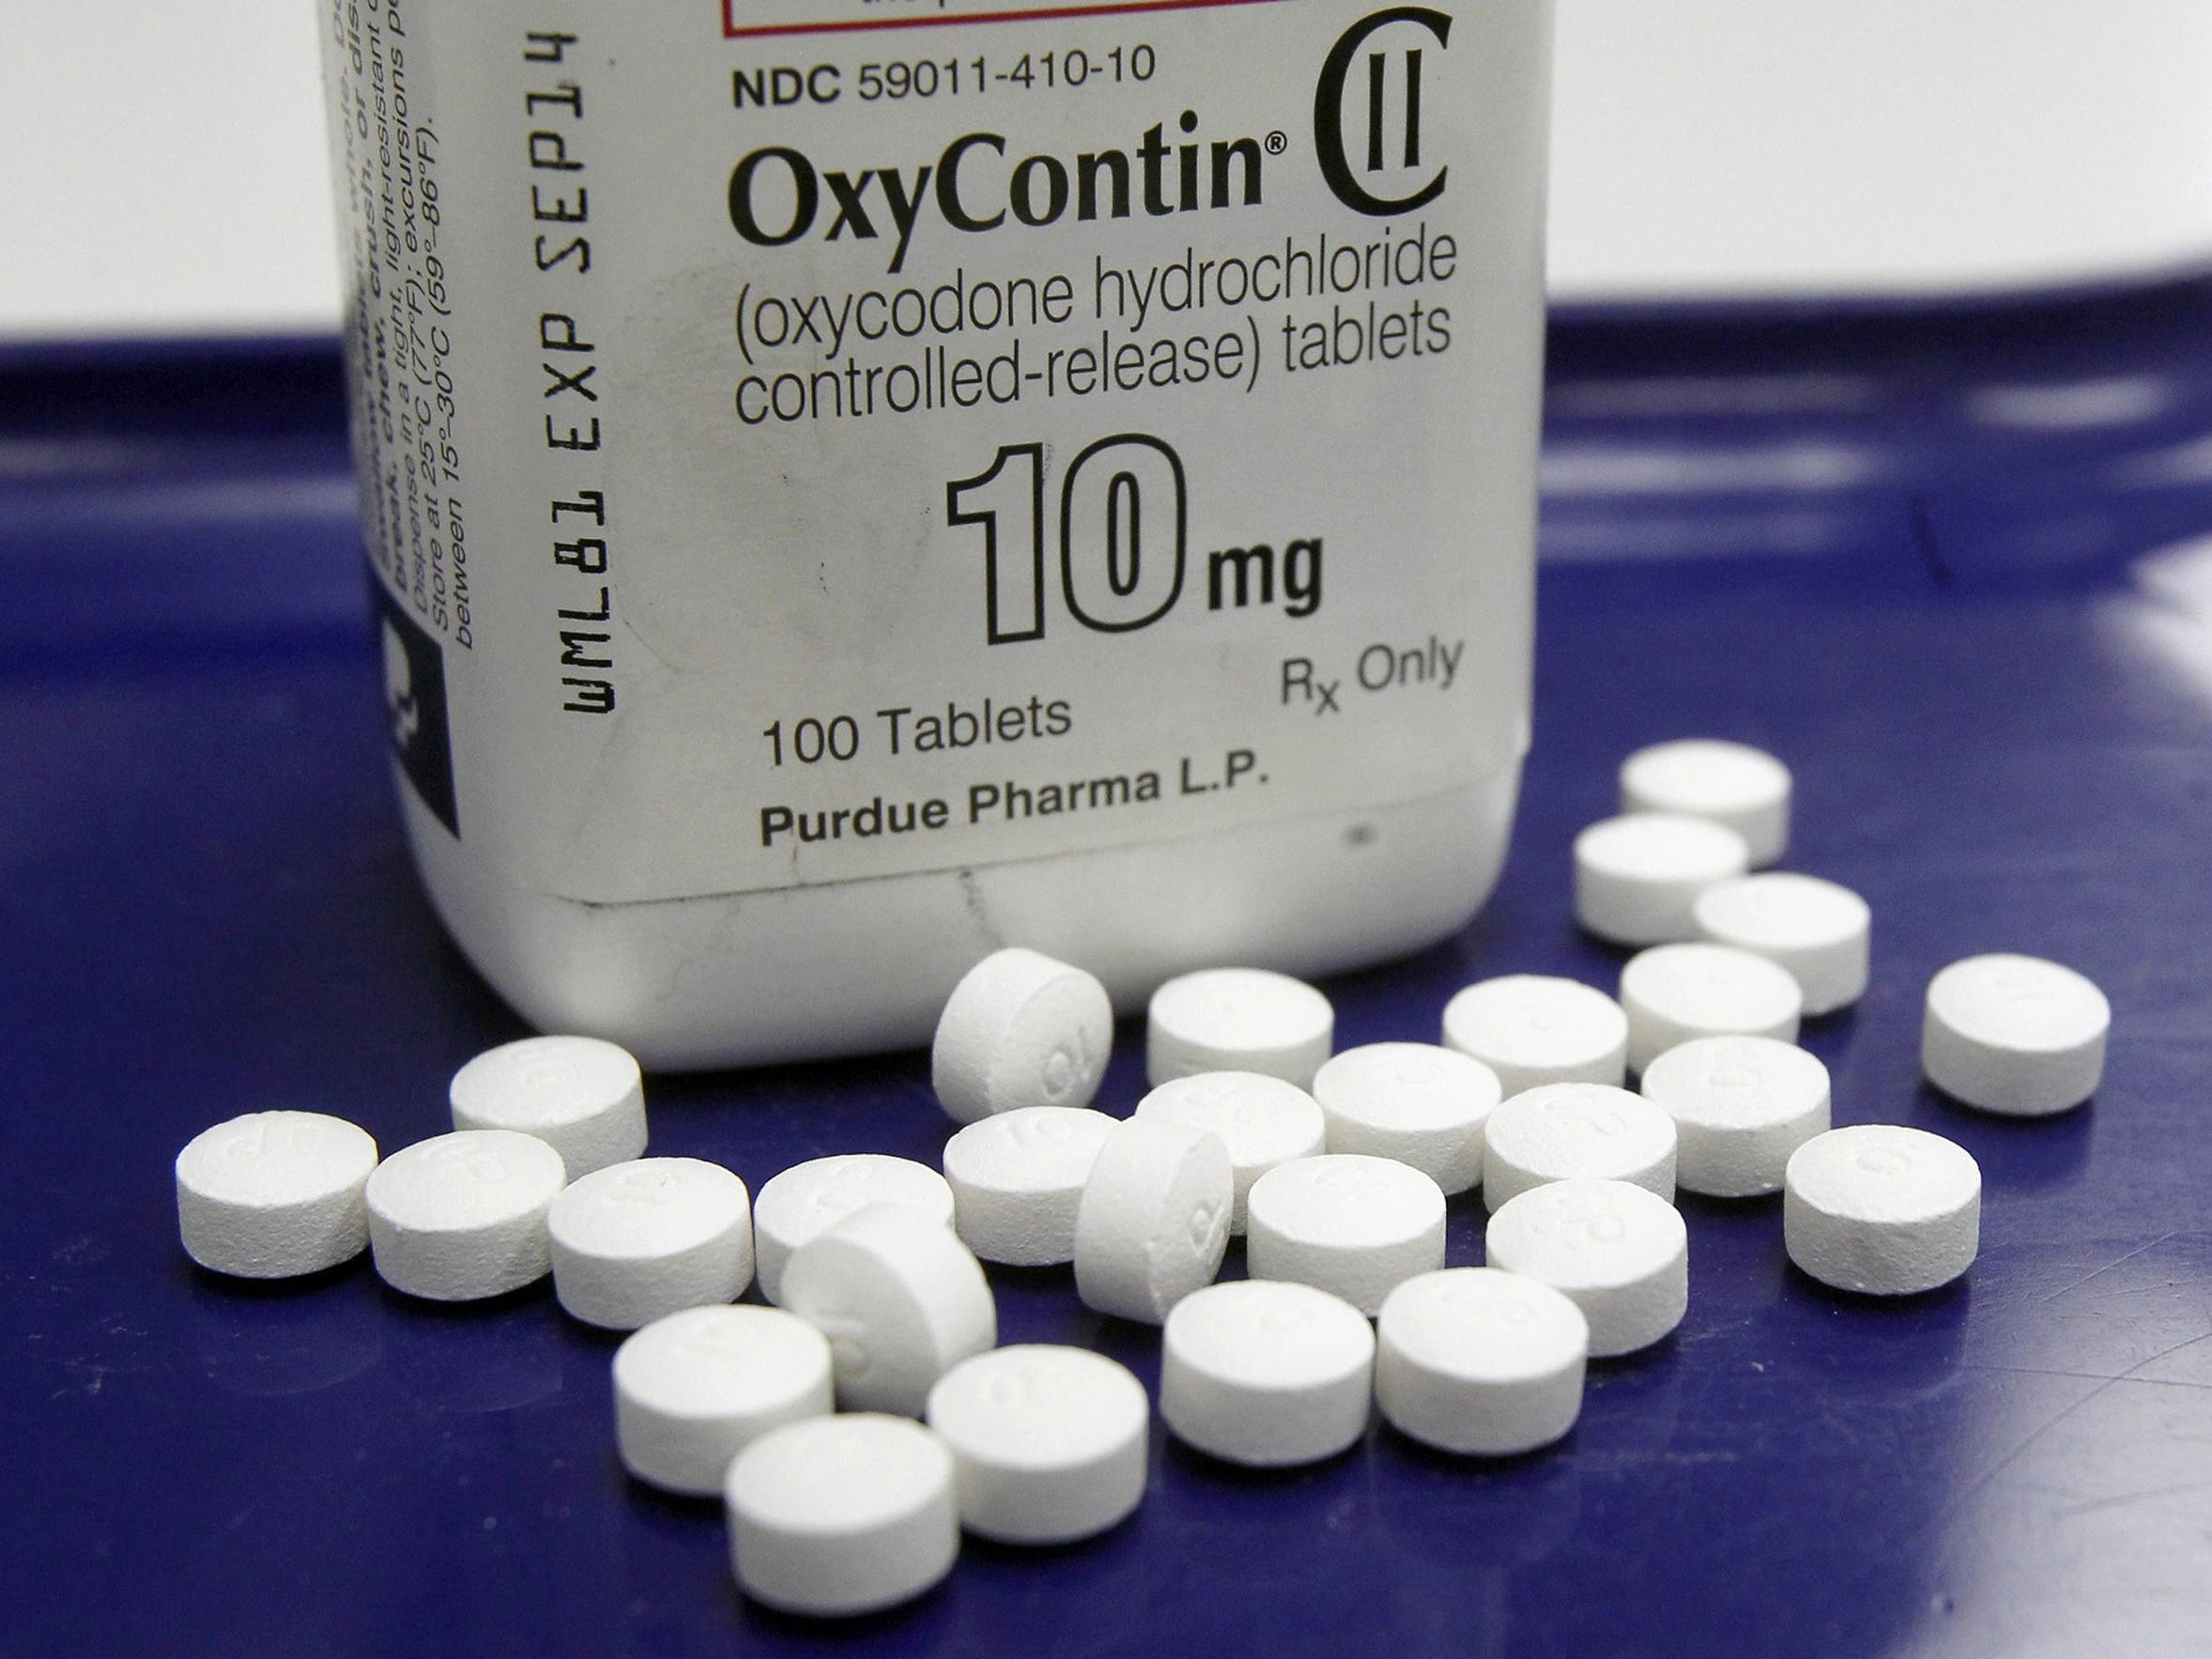 The Seven Mile Bloods flooded Charleston, West Virginia, with OxyContin, according to the government.